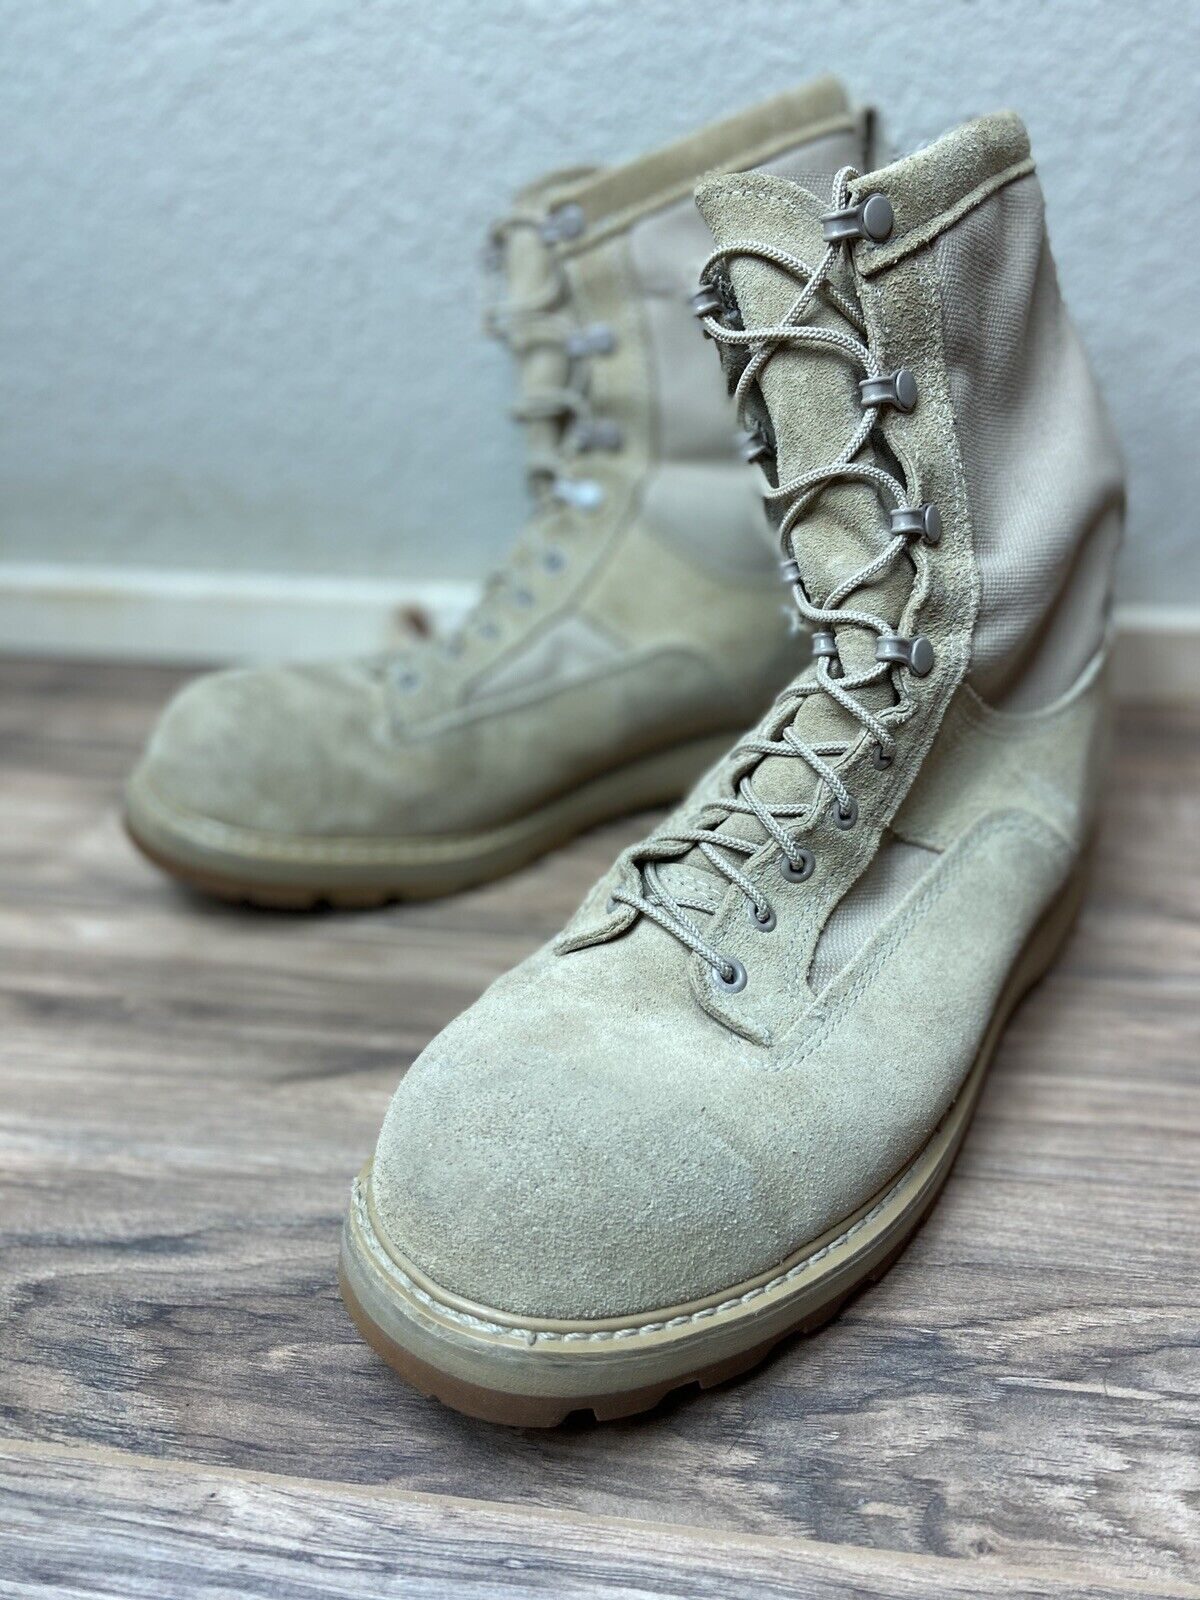 Bates GORE-TEX Army Tan Combat / Flight Apporoved Boots Size 12.5 R Vibram